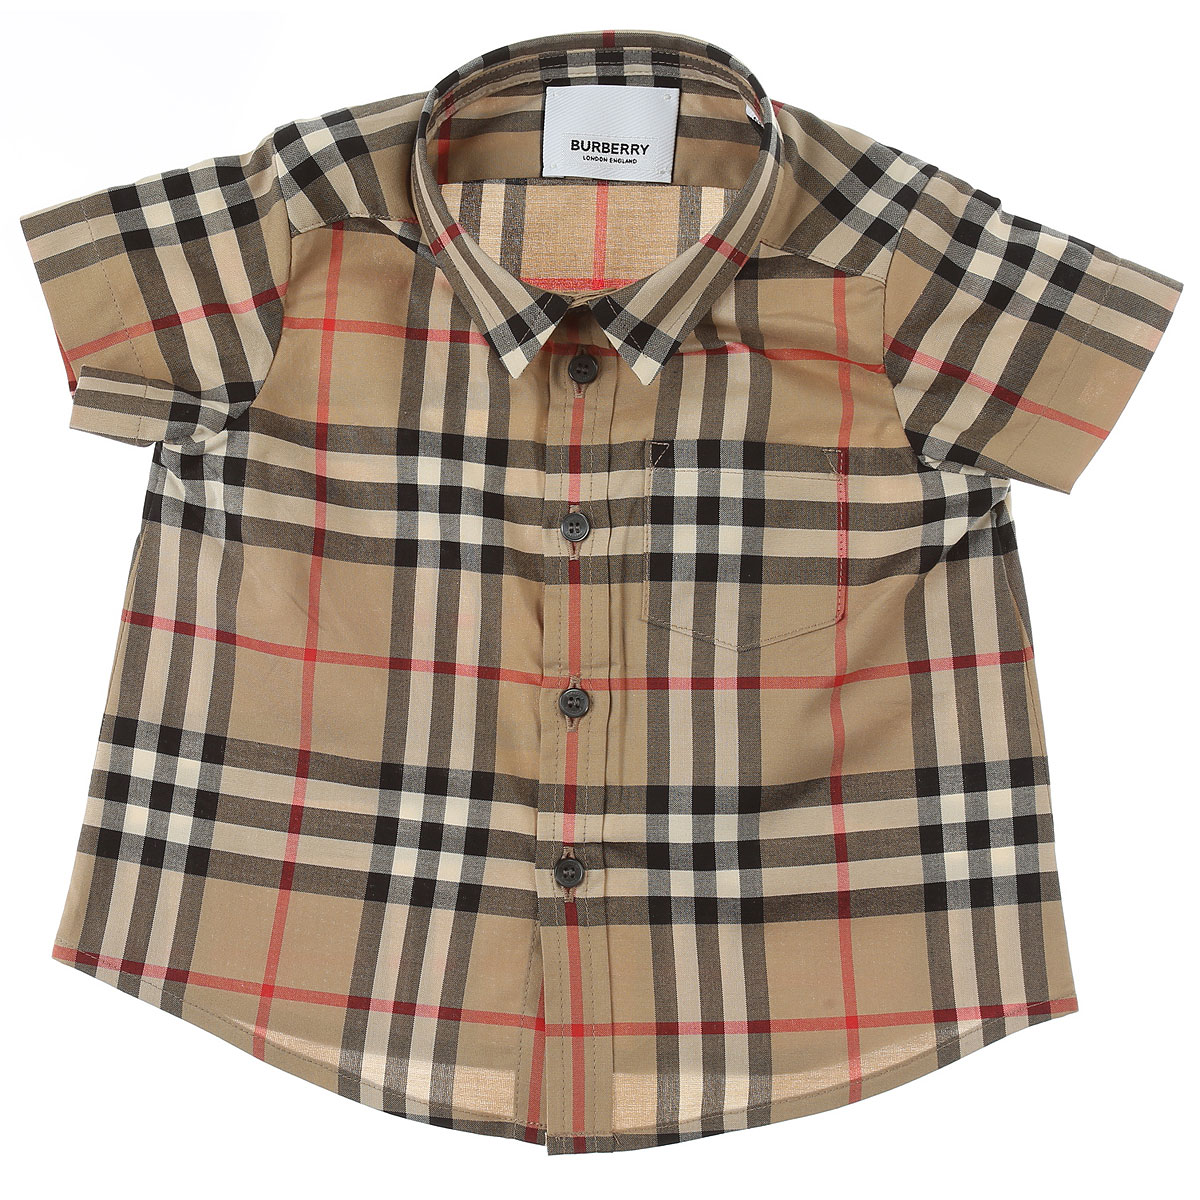 Burberry Baby Shirts for Boys On Sale, Beige, Cotton, 2019, 18M 6M